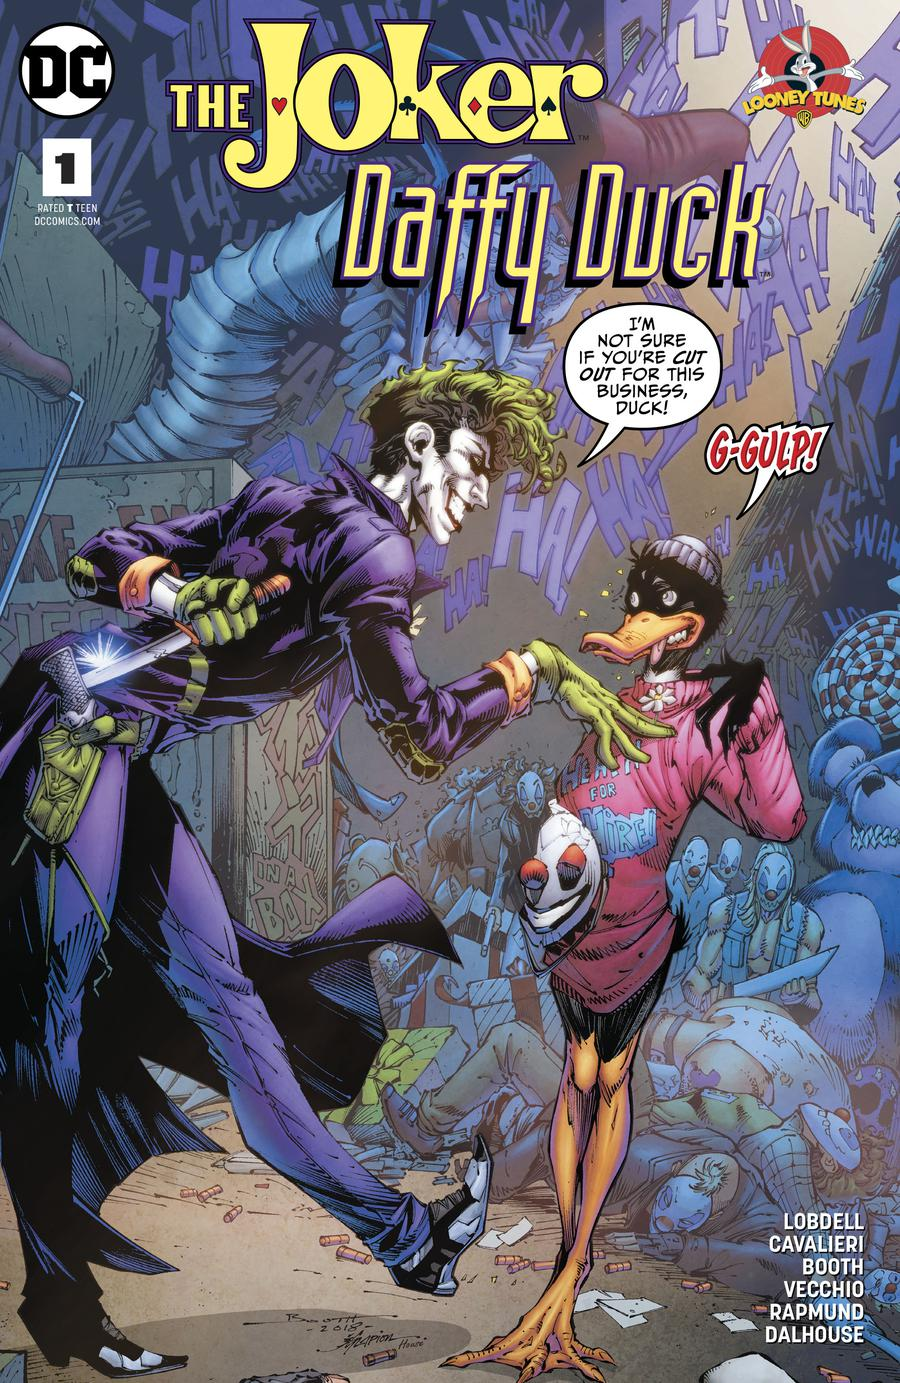 Joker Daffy Duck Special #1 Cover A Regular Brett Booth & Norm Rapmund Cover